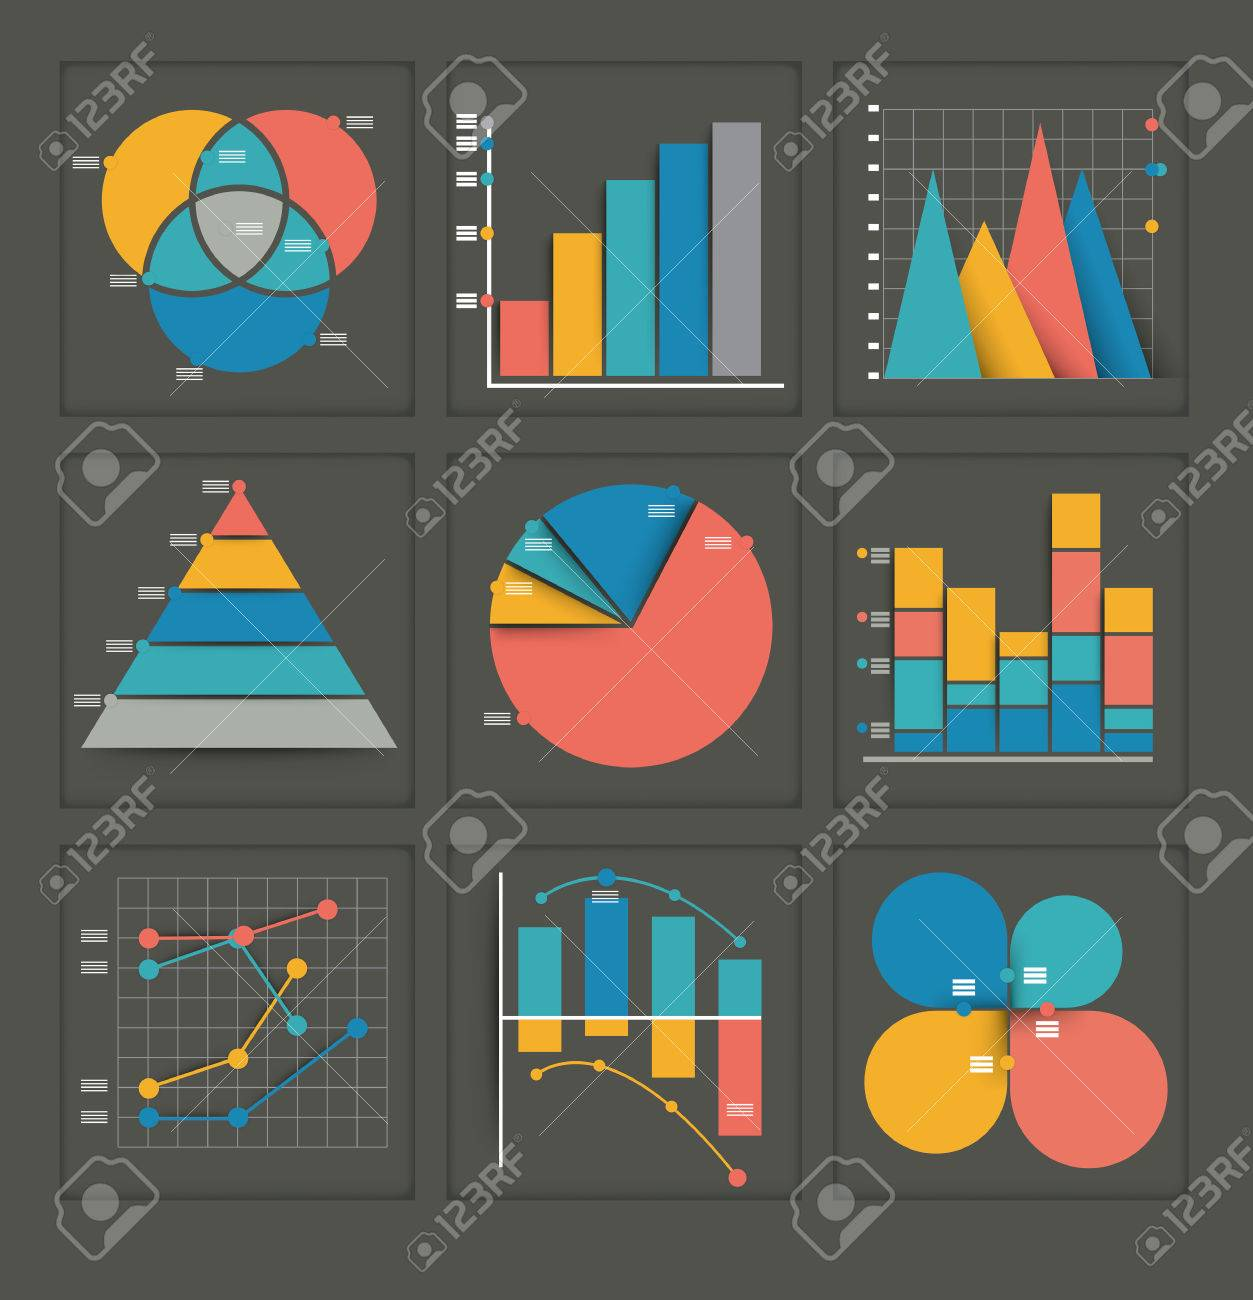 Set of colored vector business graphs in various designs showing set of colored vector business graphs in various designs showing a pyramid pie chart nvjuhfo Image collections